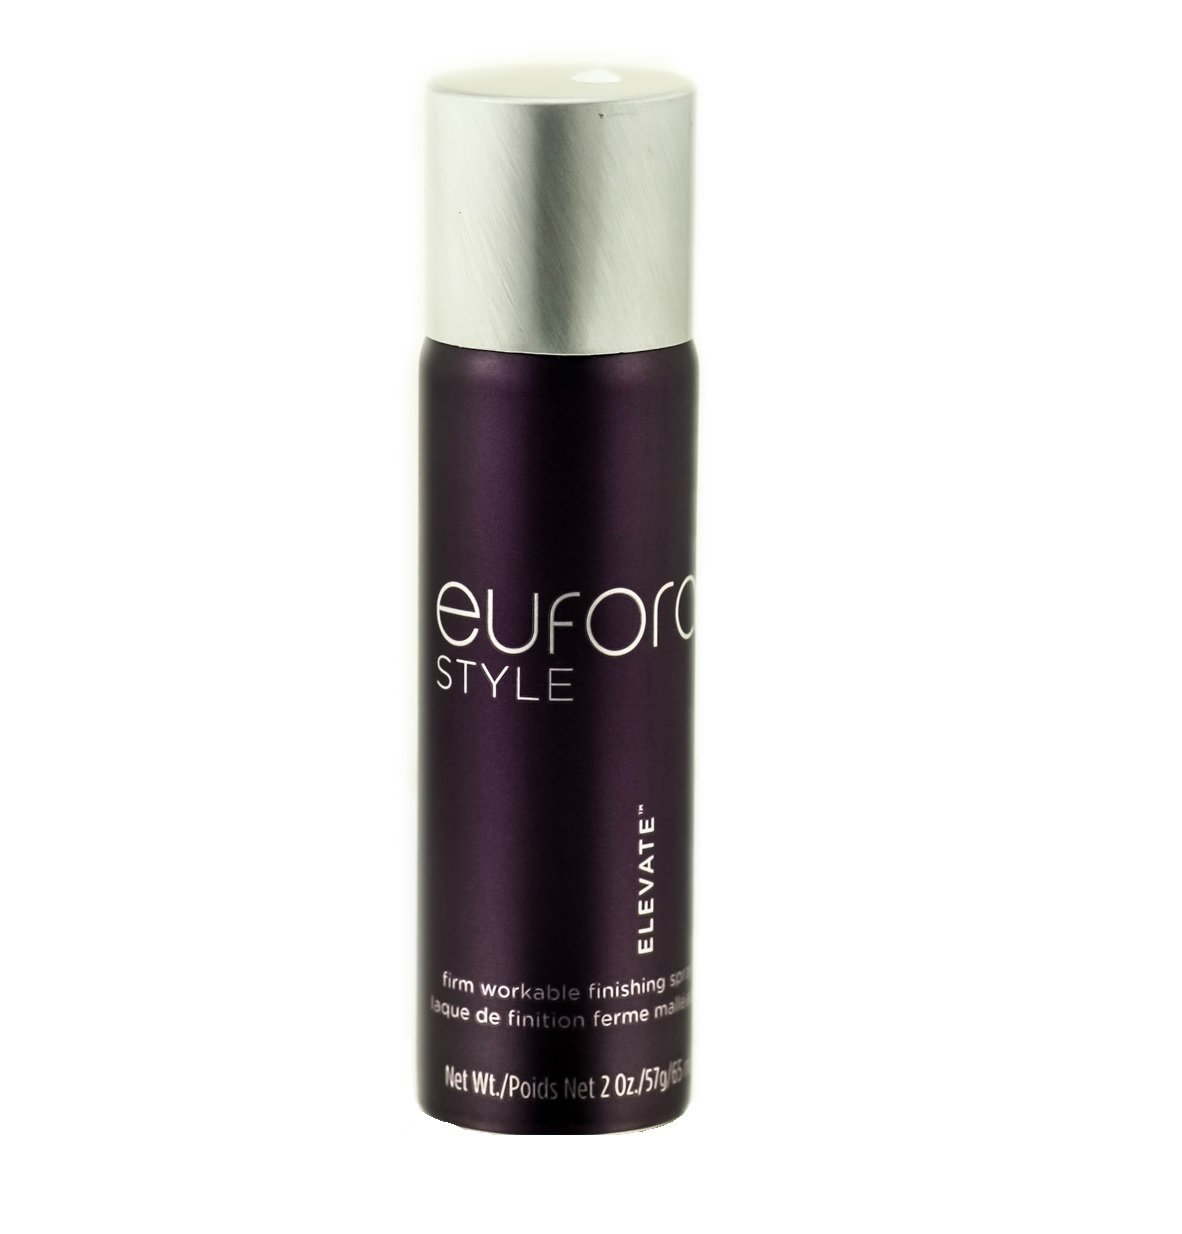 New Eufora Elevate Firm Hold Workable Finishing Hair Spray 2 oz for cheap